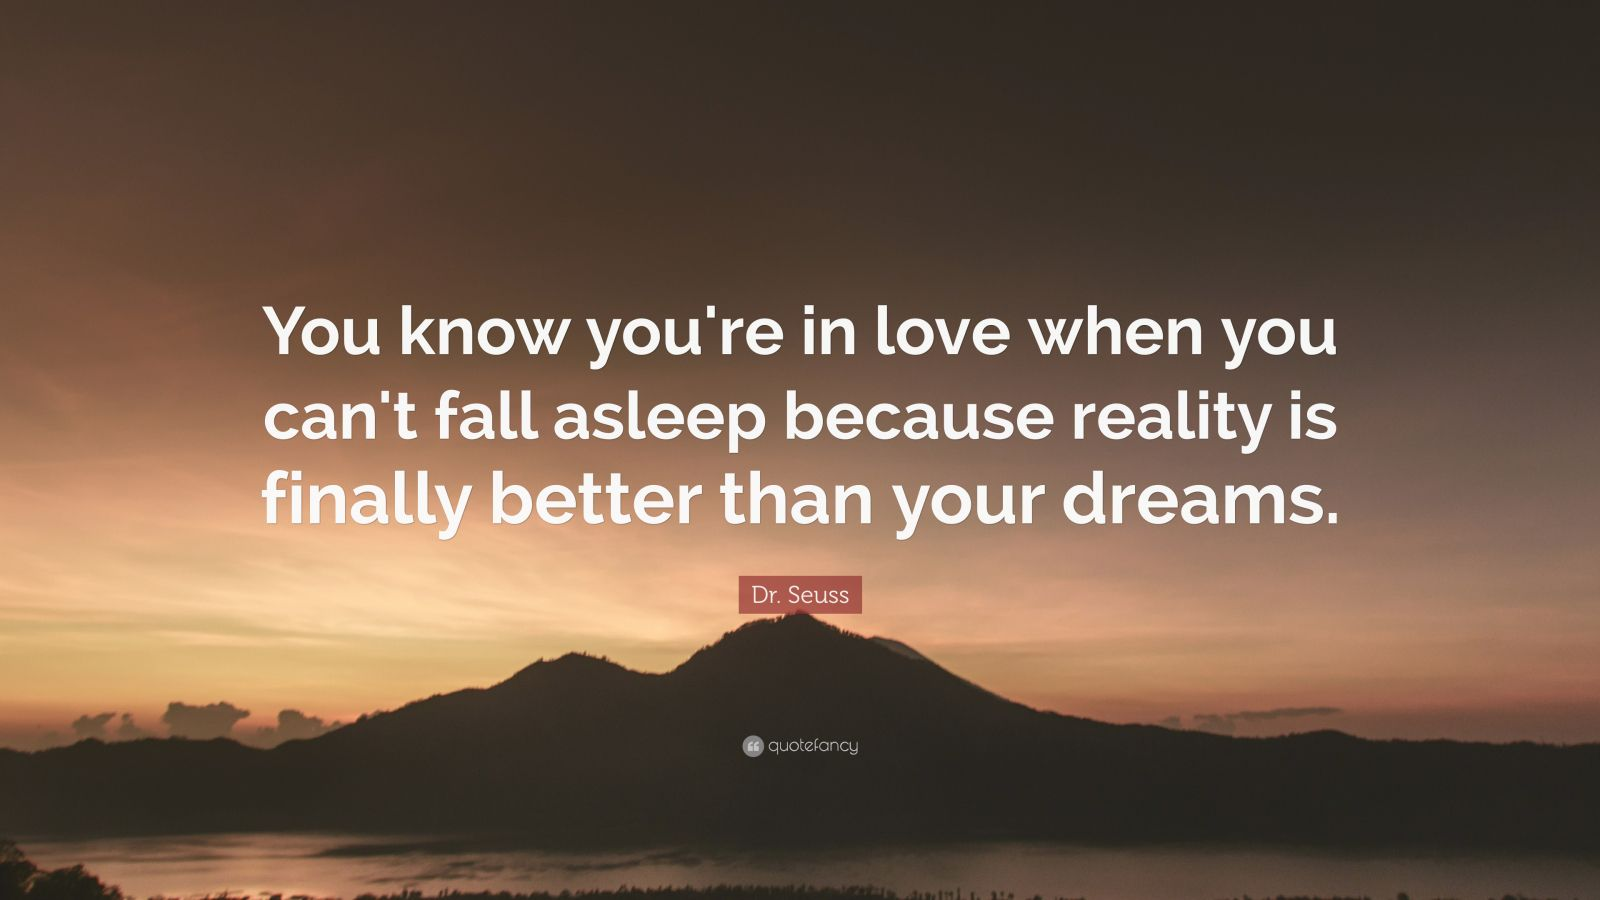 How will you know you re in love